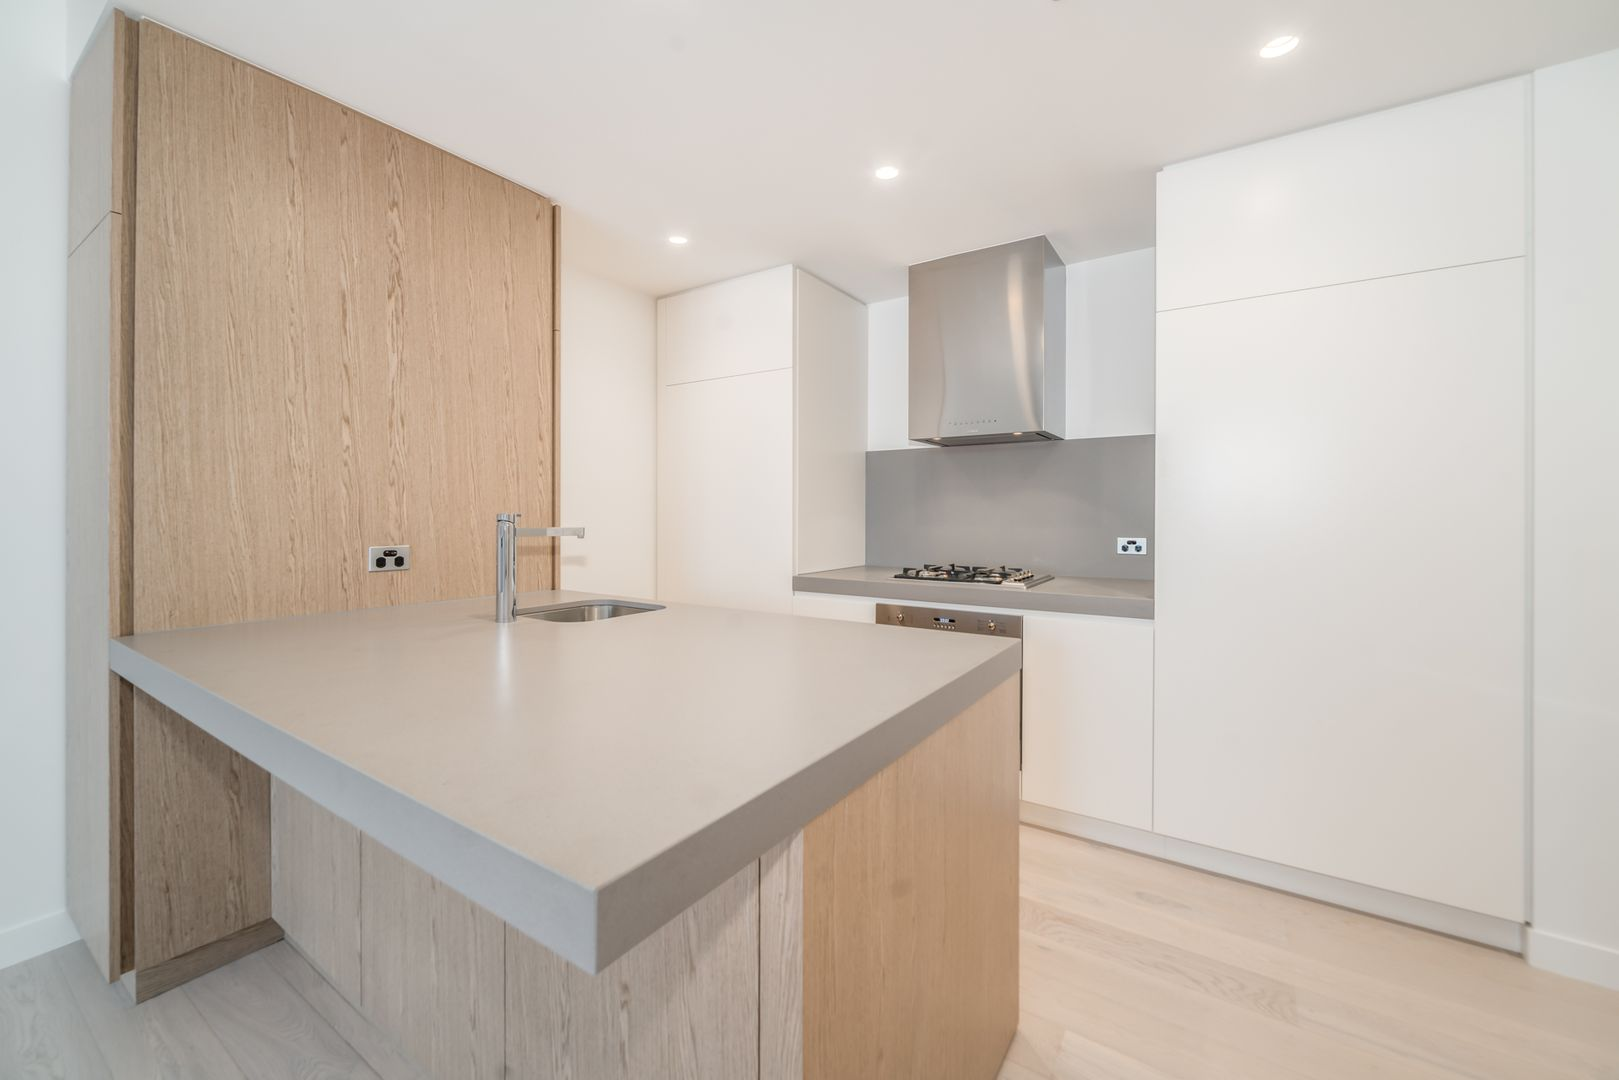 106B/366-386 Queenberry St, North Melbourne VIC 3051, Image 2